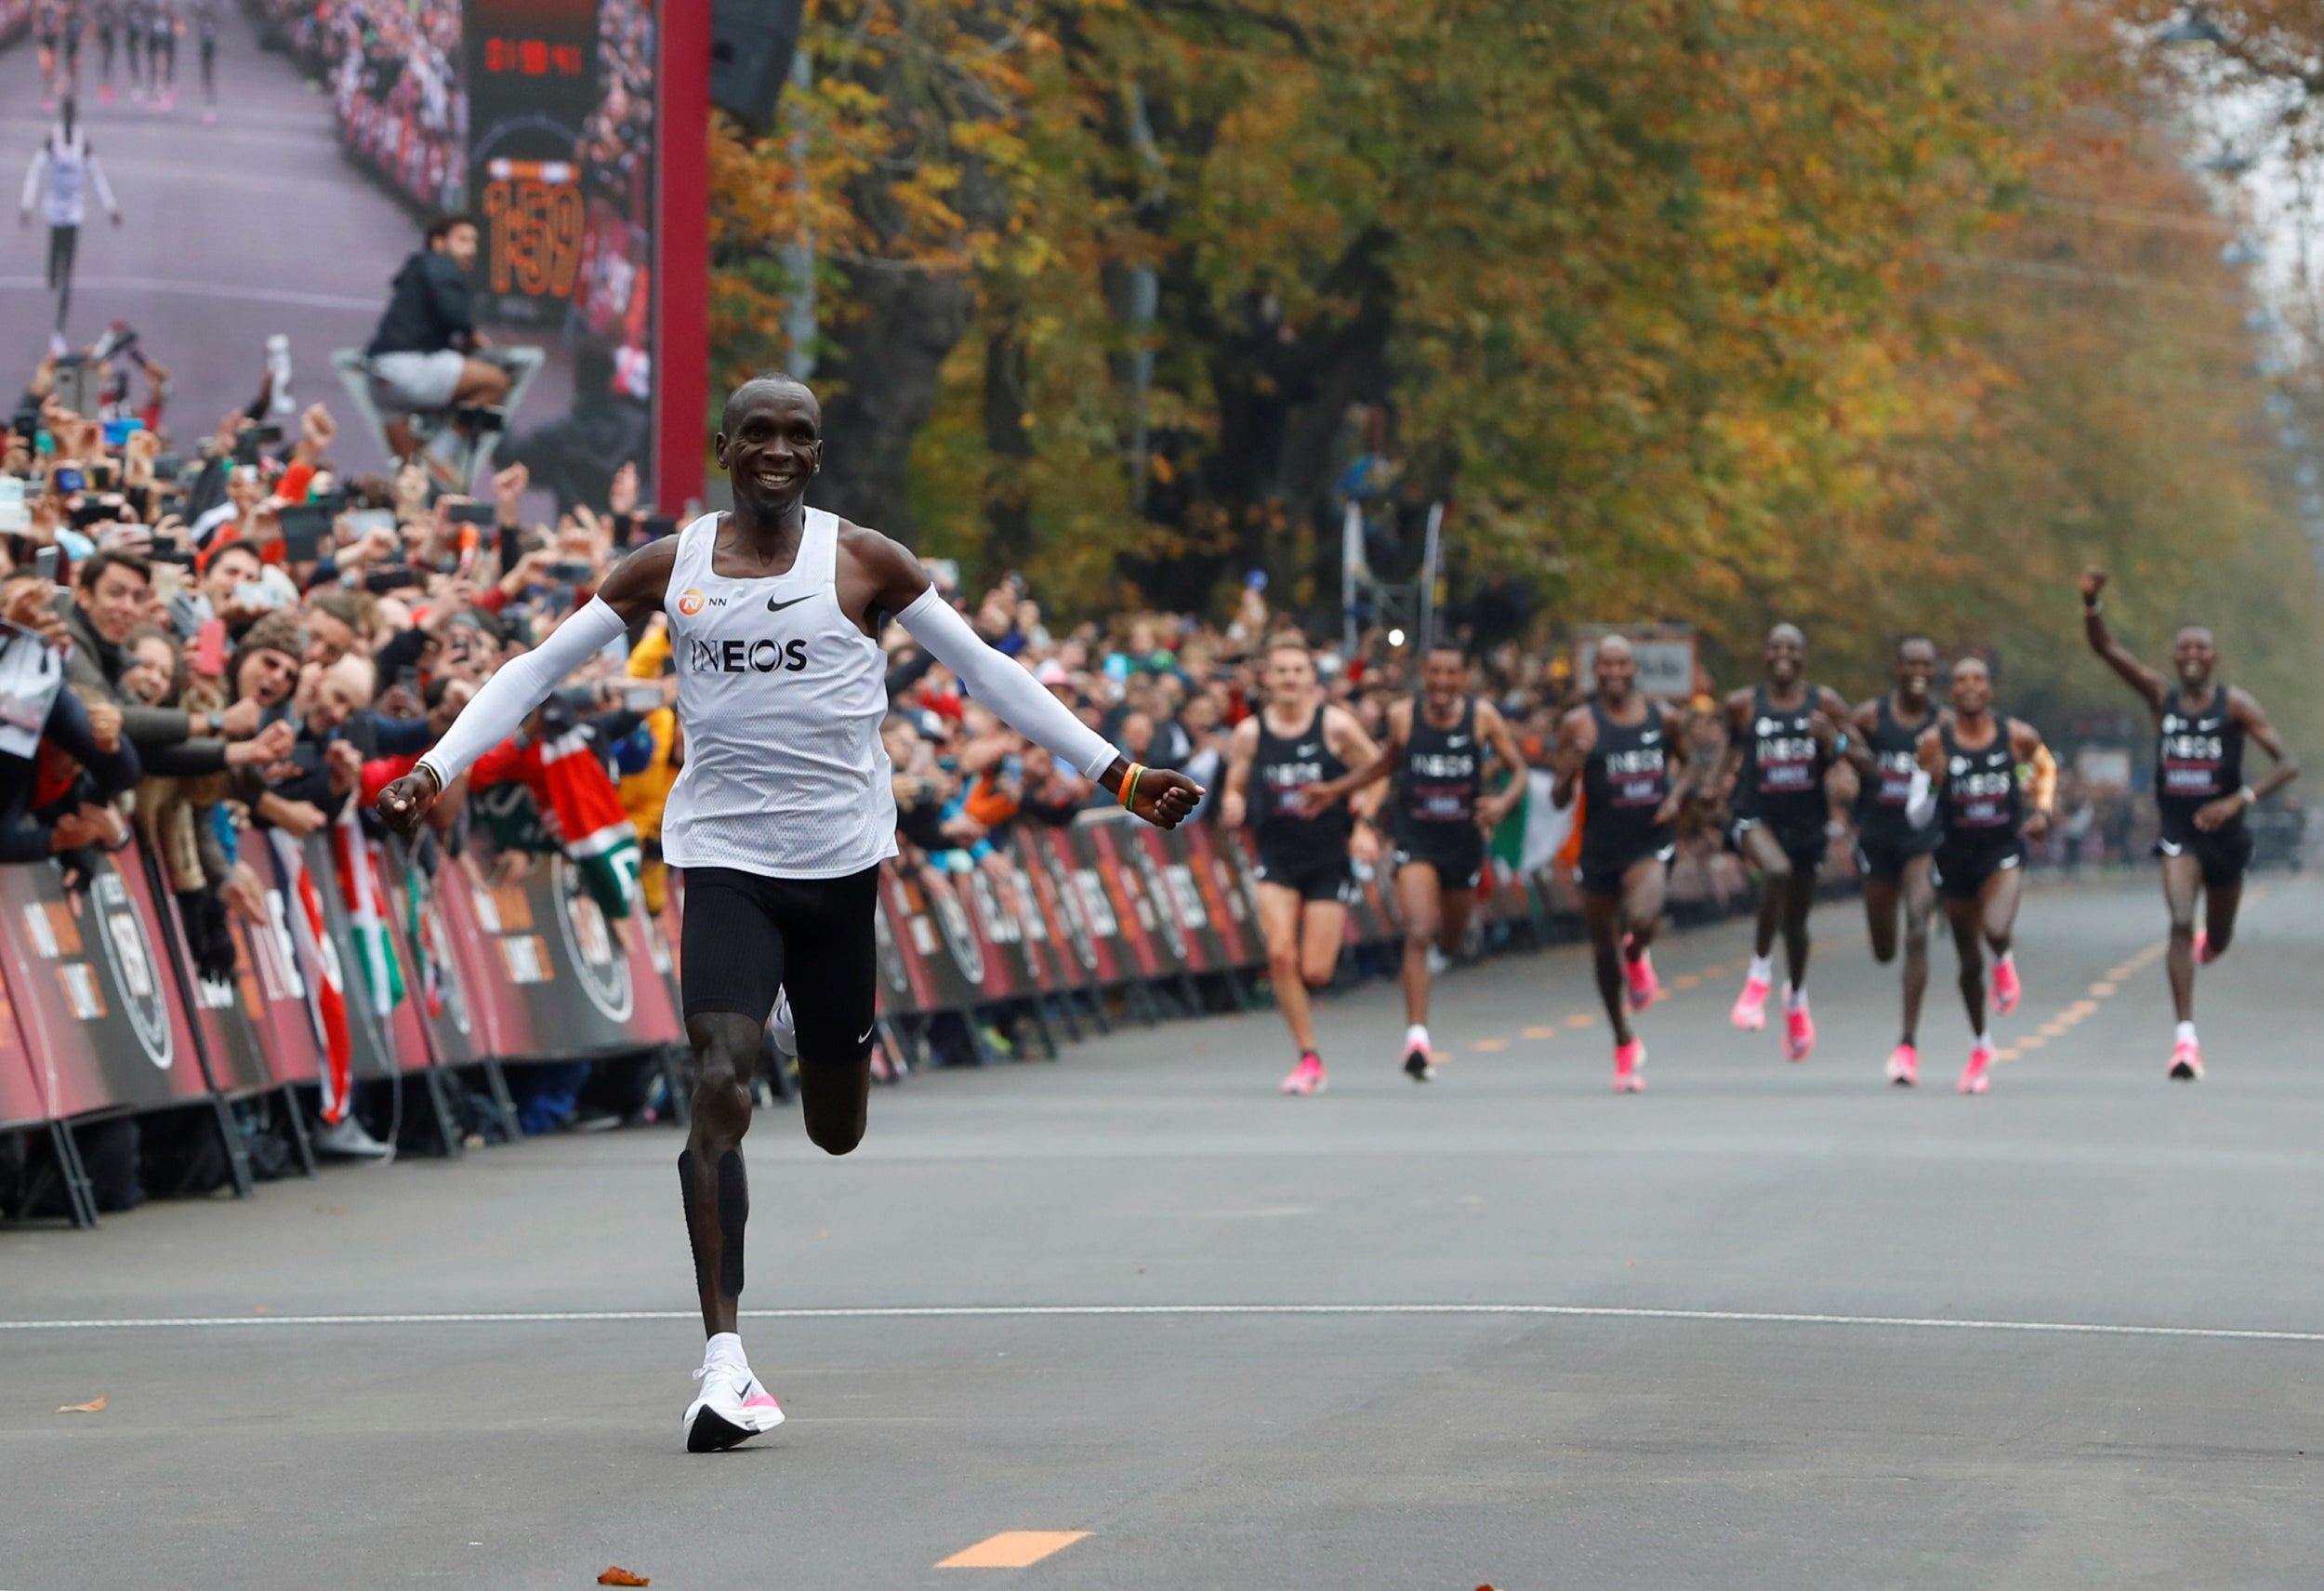 Eliud Kipchoge's record breaking Nike shoes to be banned CNN